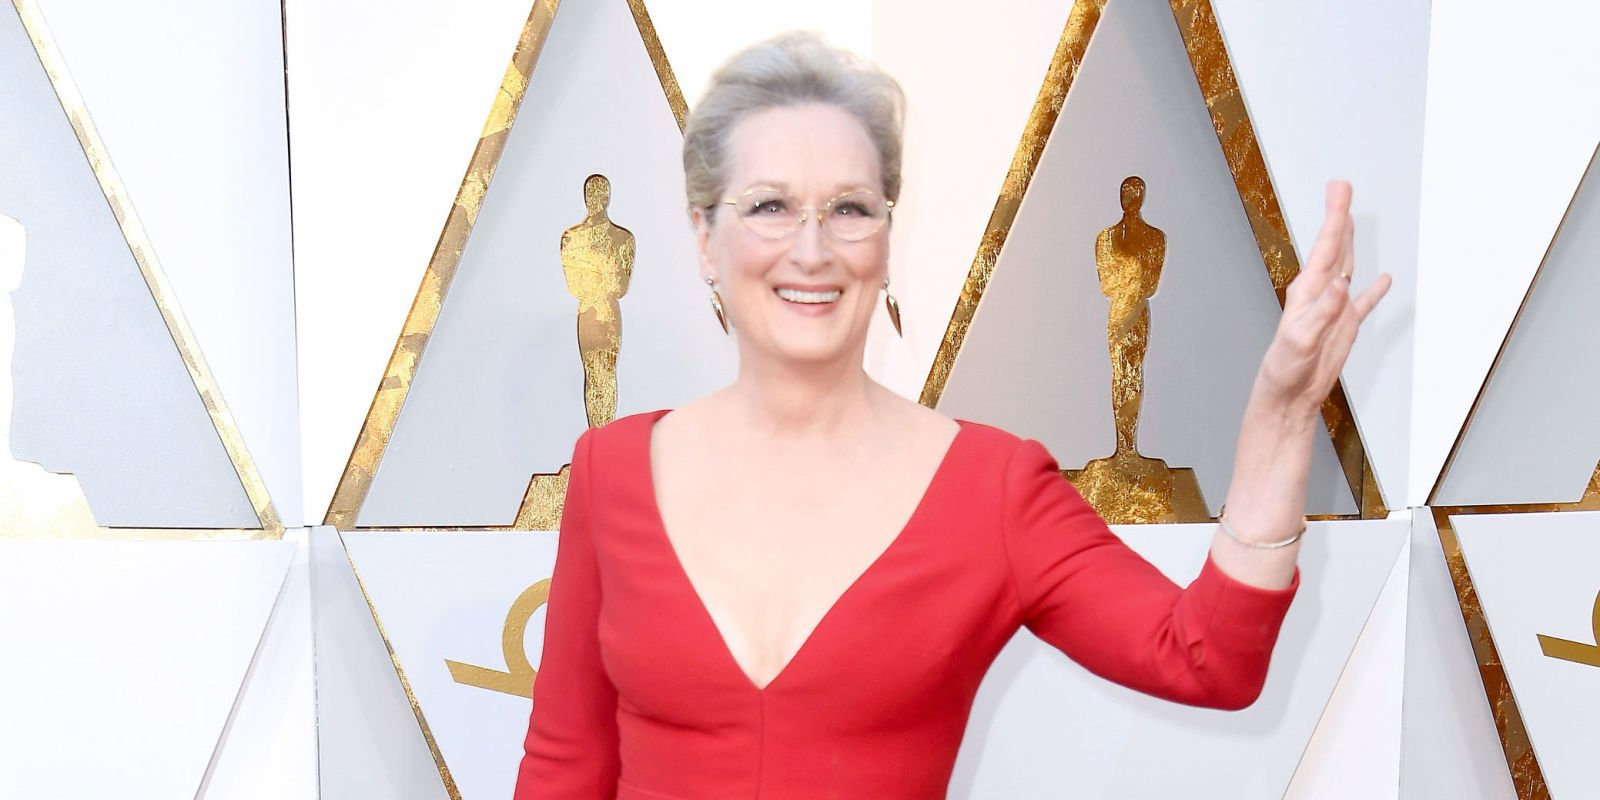 Meryl Streep becomes Oscars meme AGAIN after she's compared to classic Shrek character